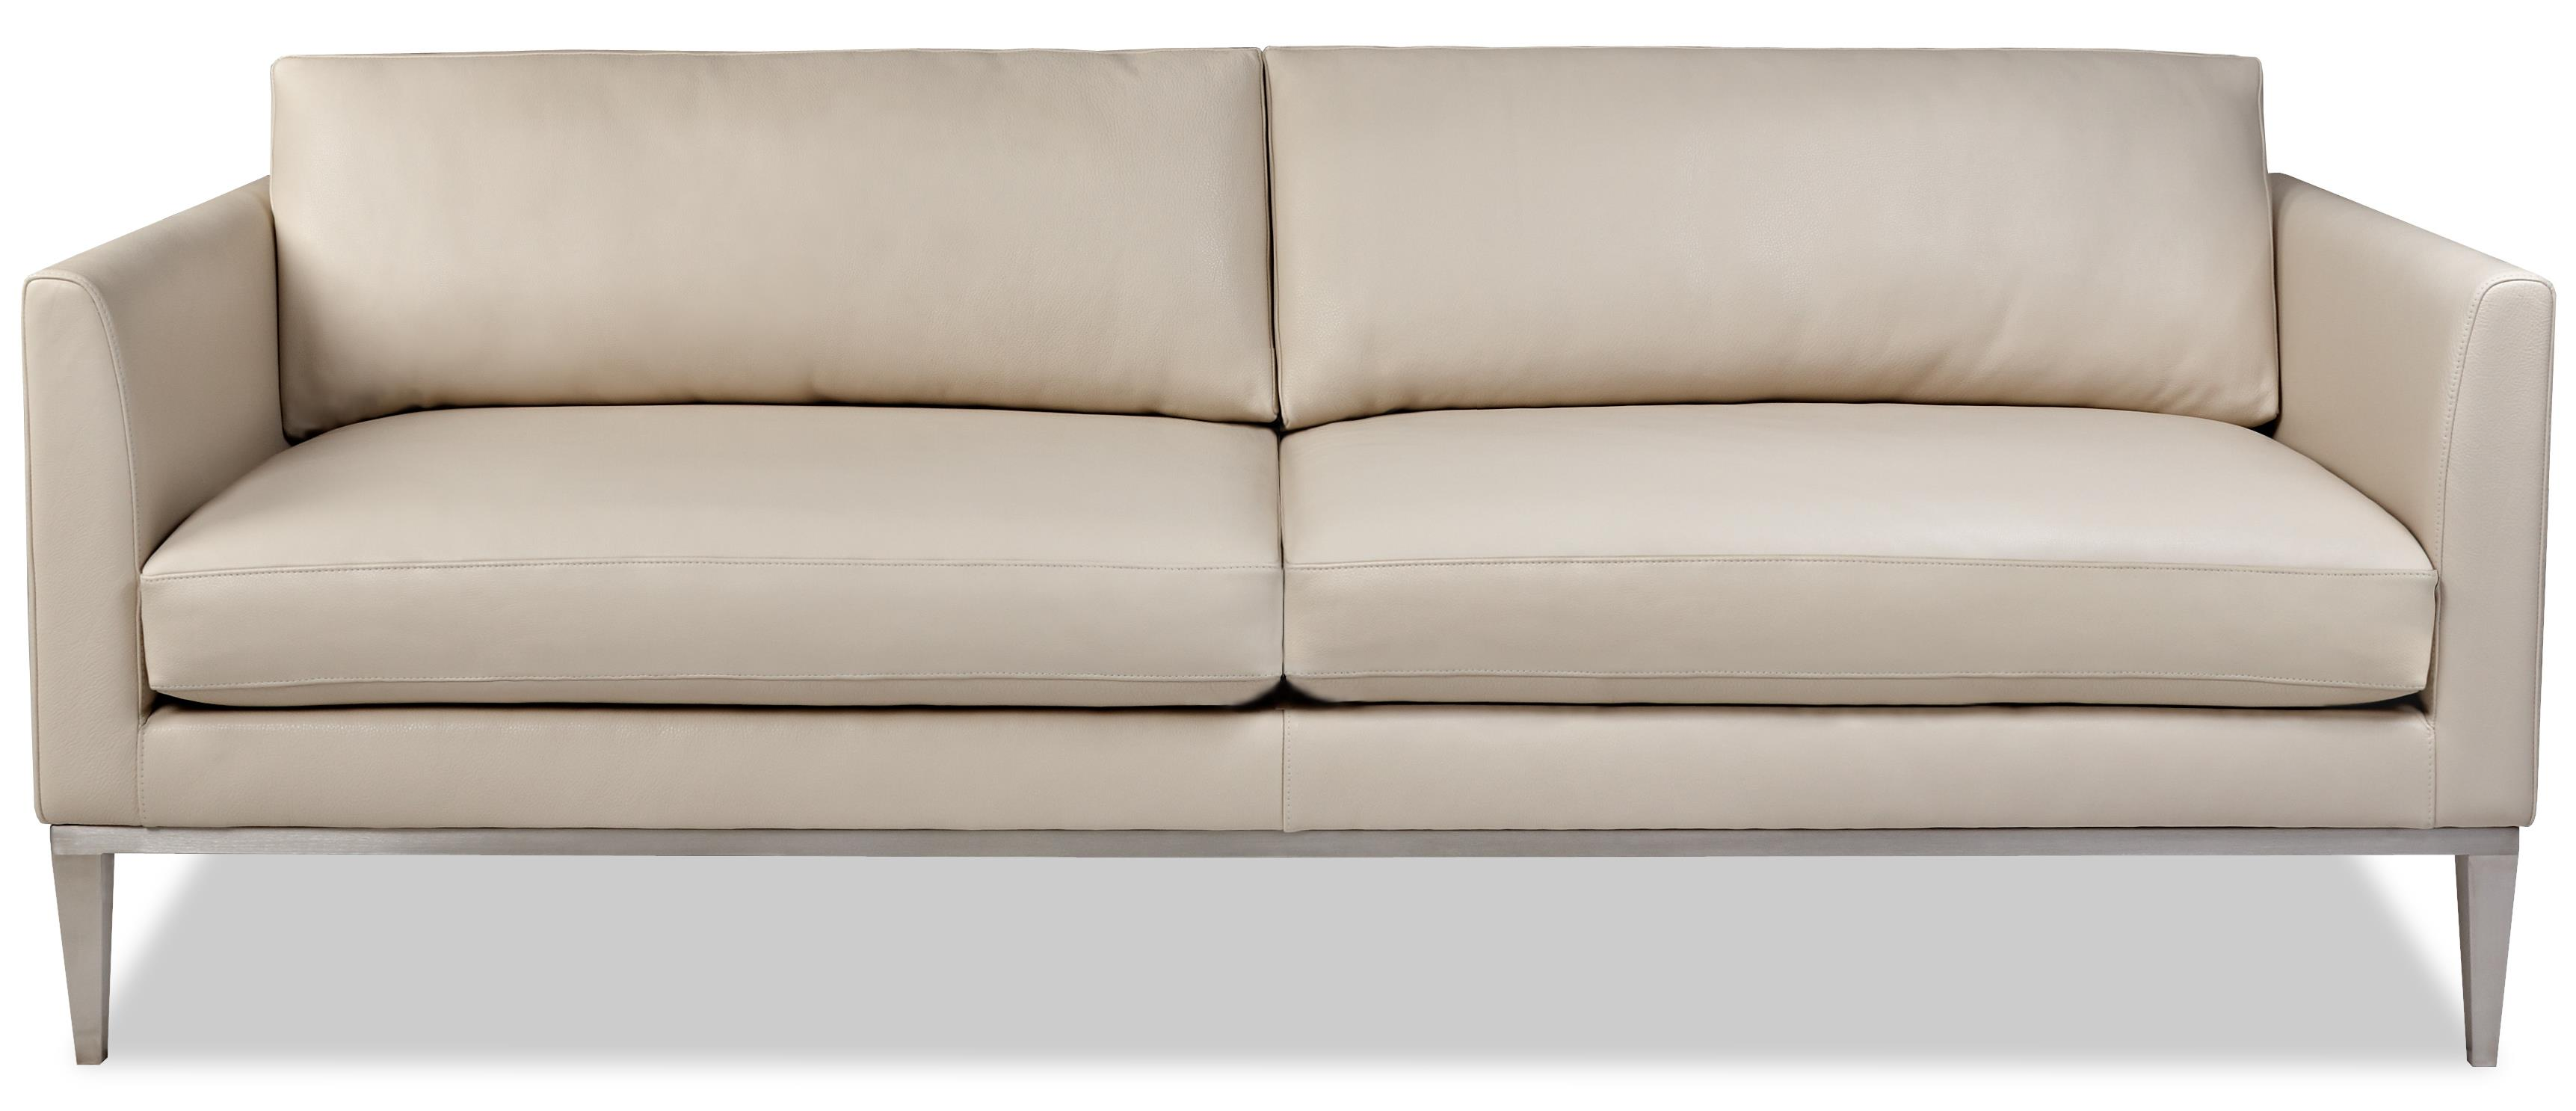 American Leather Henley Contemporary Sofa With High Leg